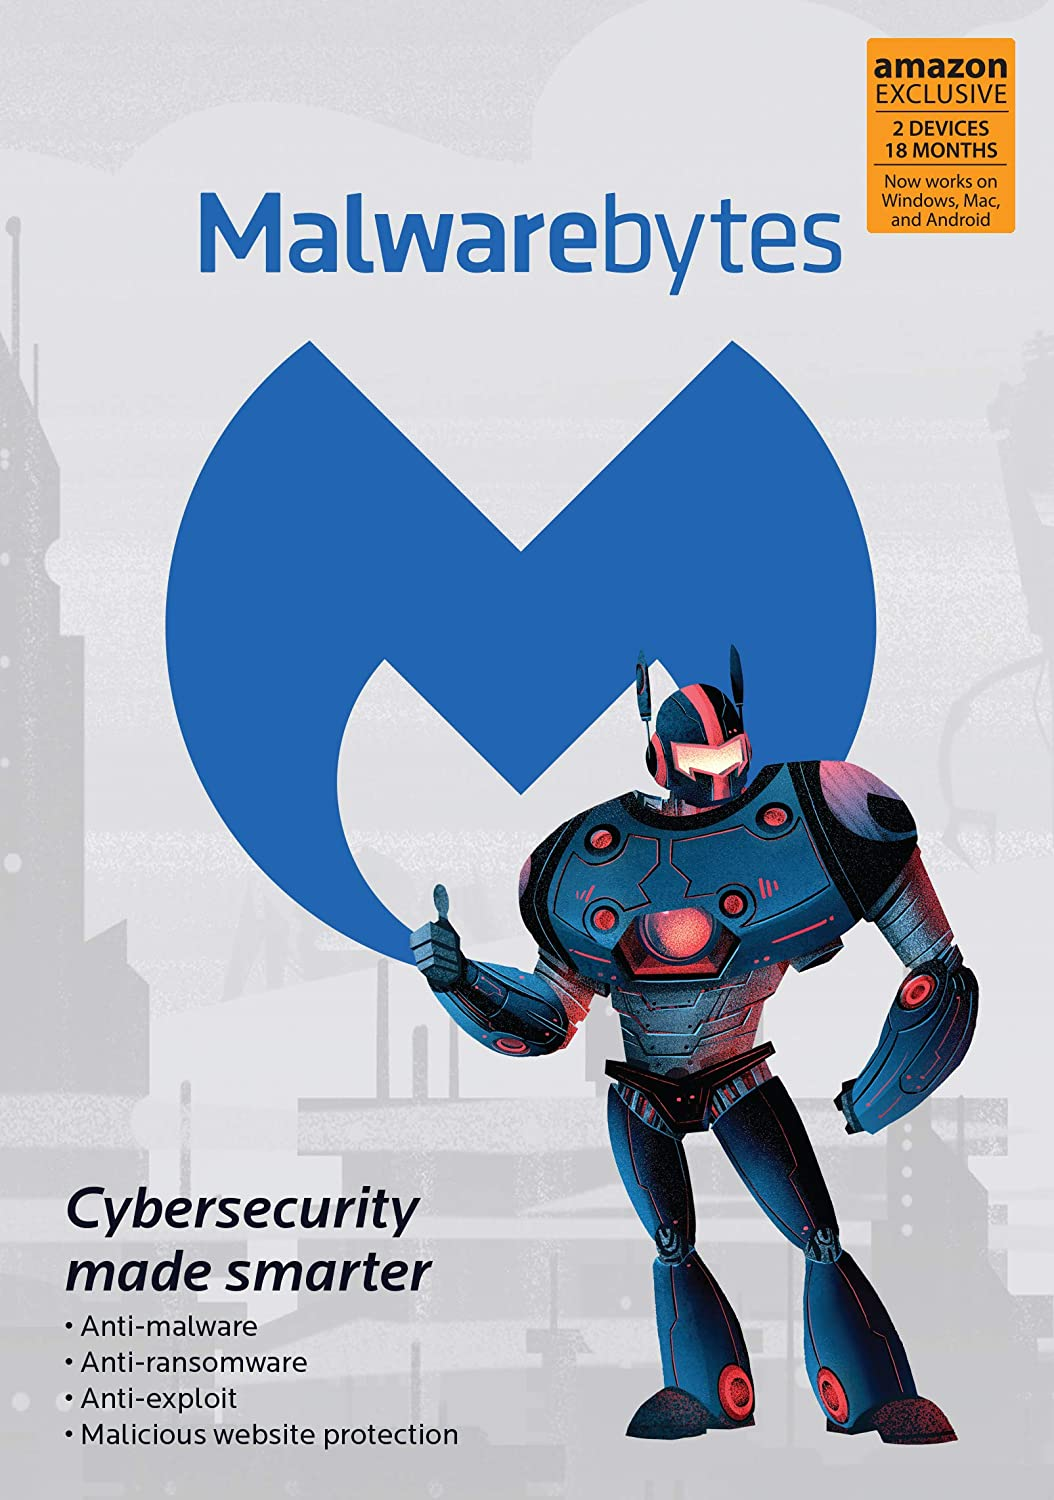 Malwarebytes 4.0 Latest Version | Amazon Exclusive | 18 Months, 2 Devices (PC, Mac, Android) [software_key_card]… 81JJXHjRoCL